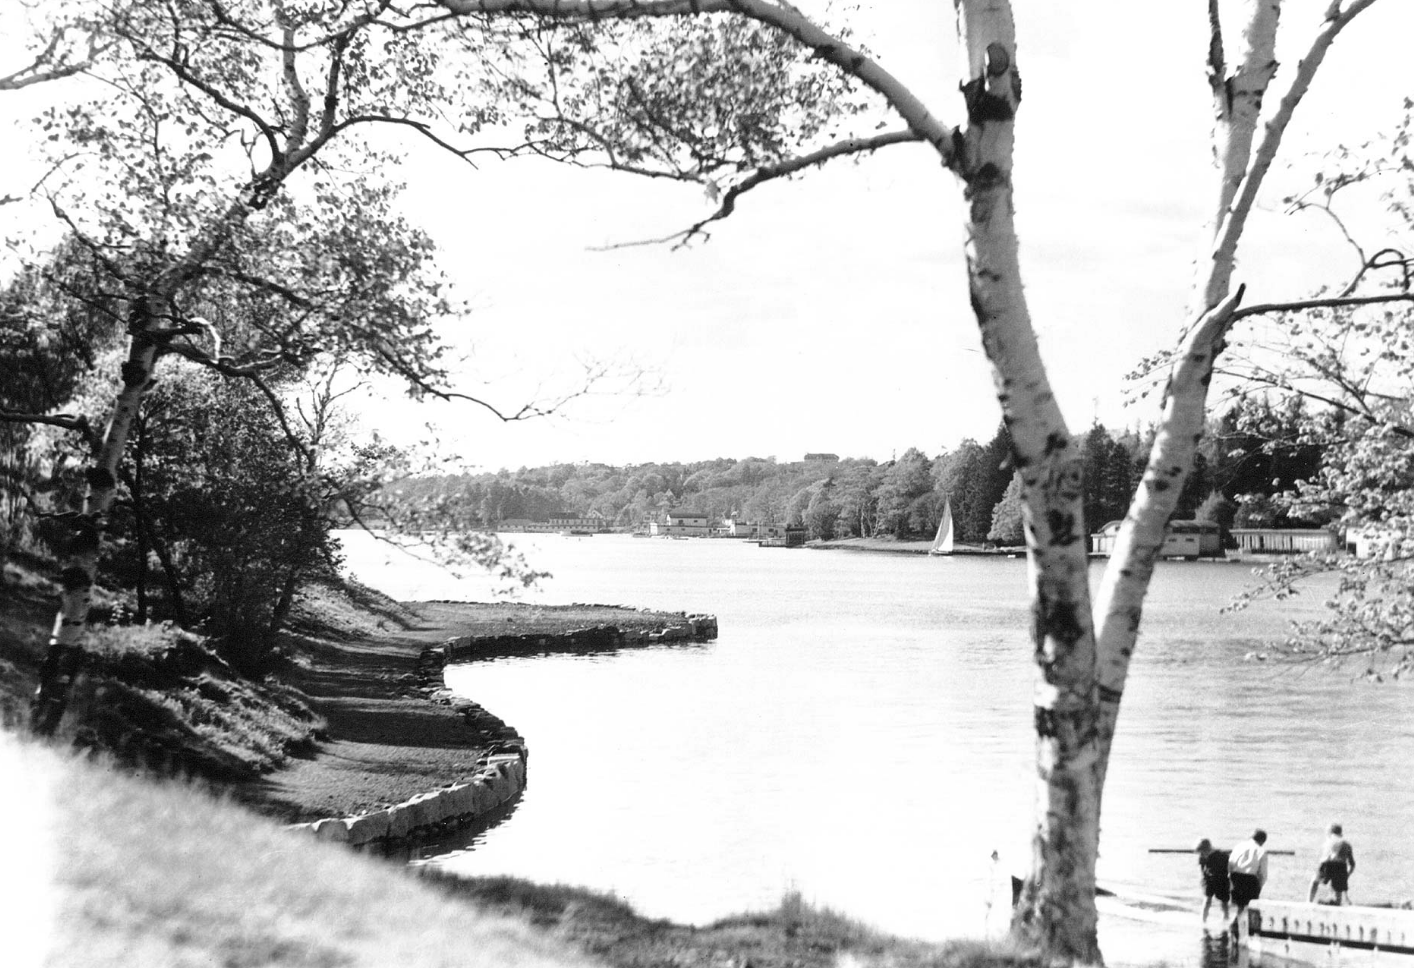 Blaack and white photo of water and people on a dock in the foreground.